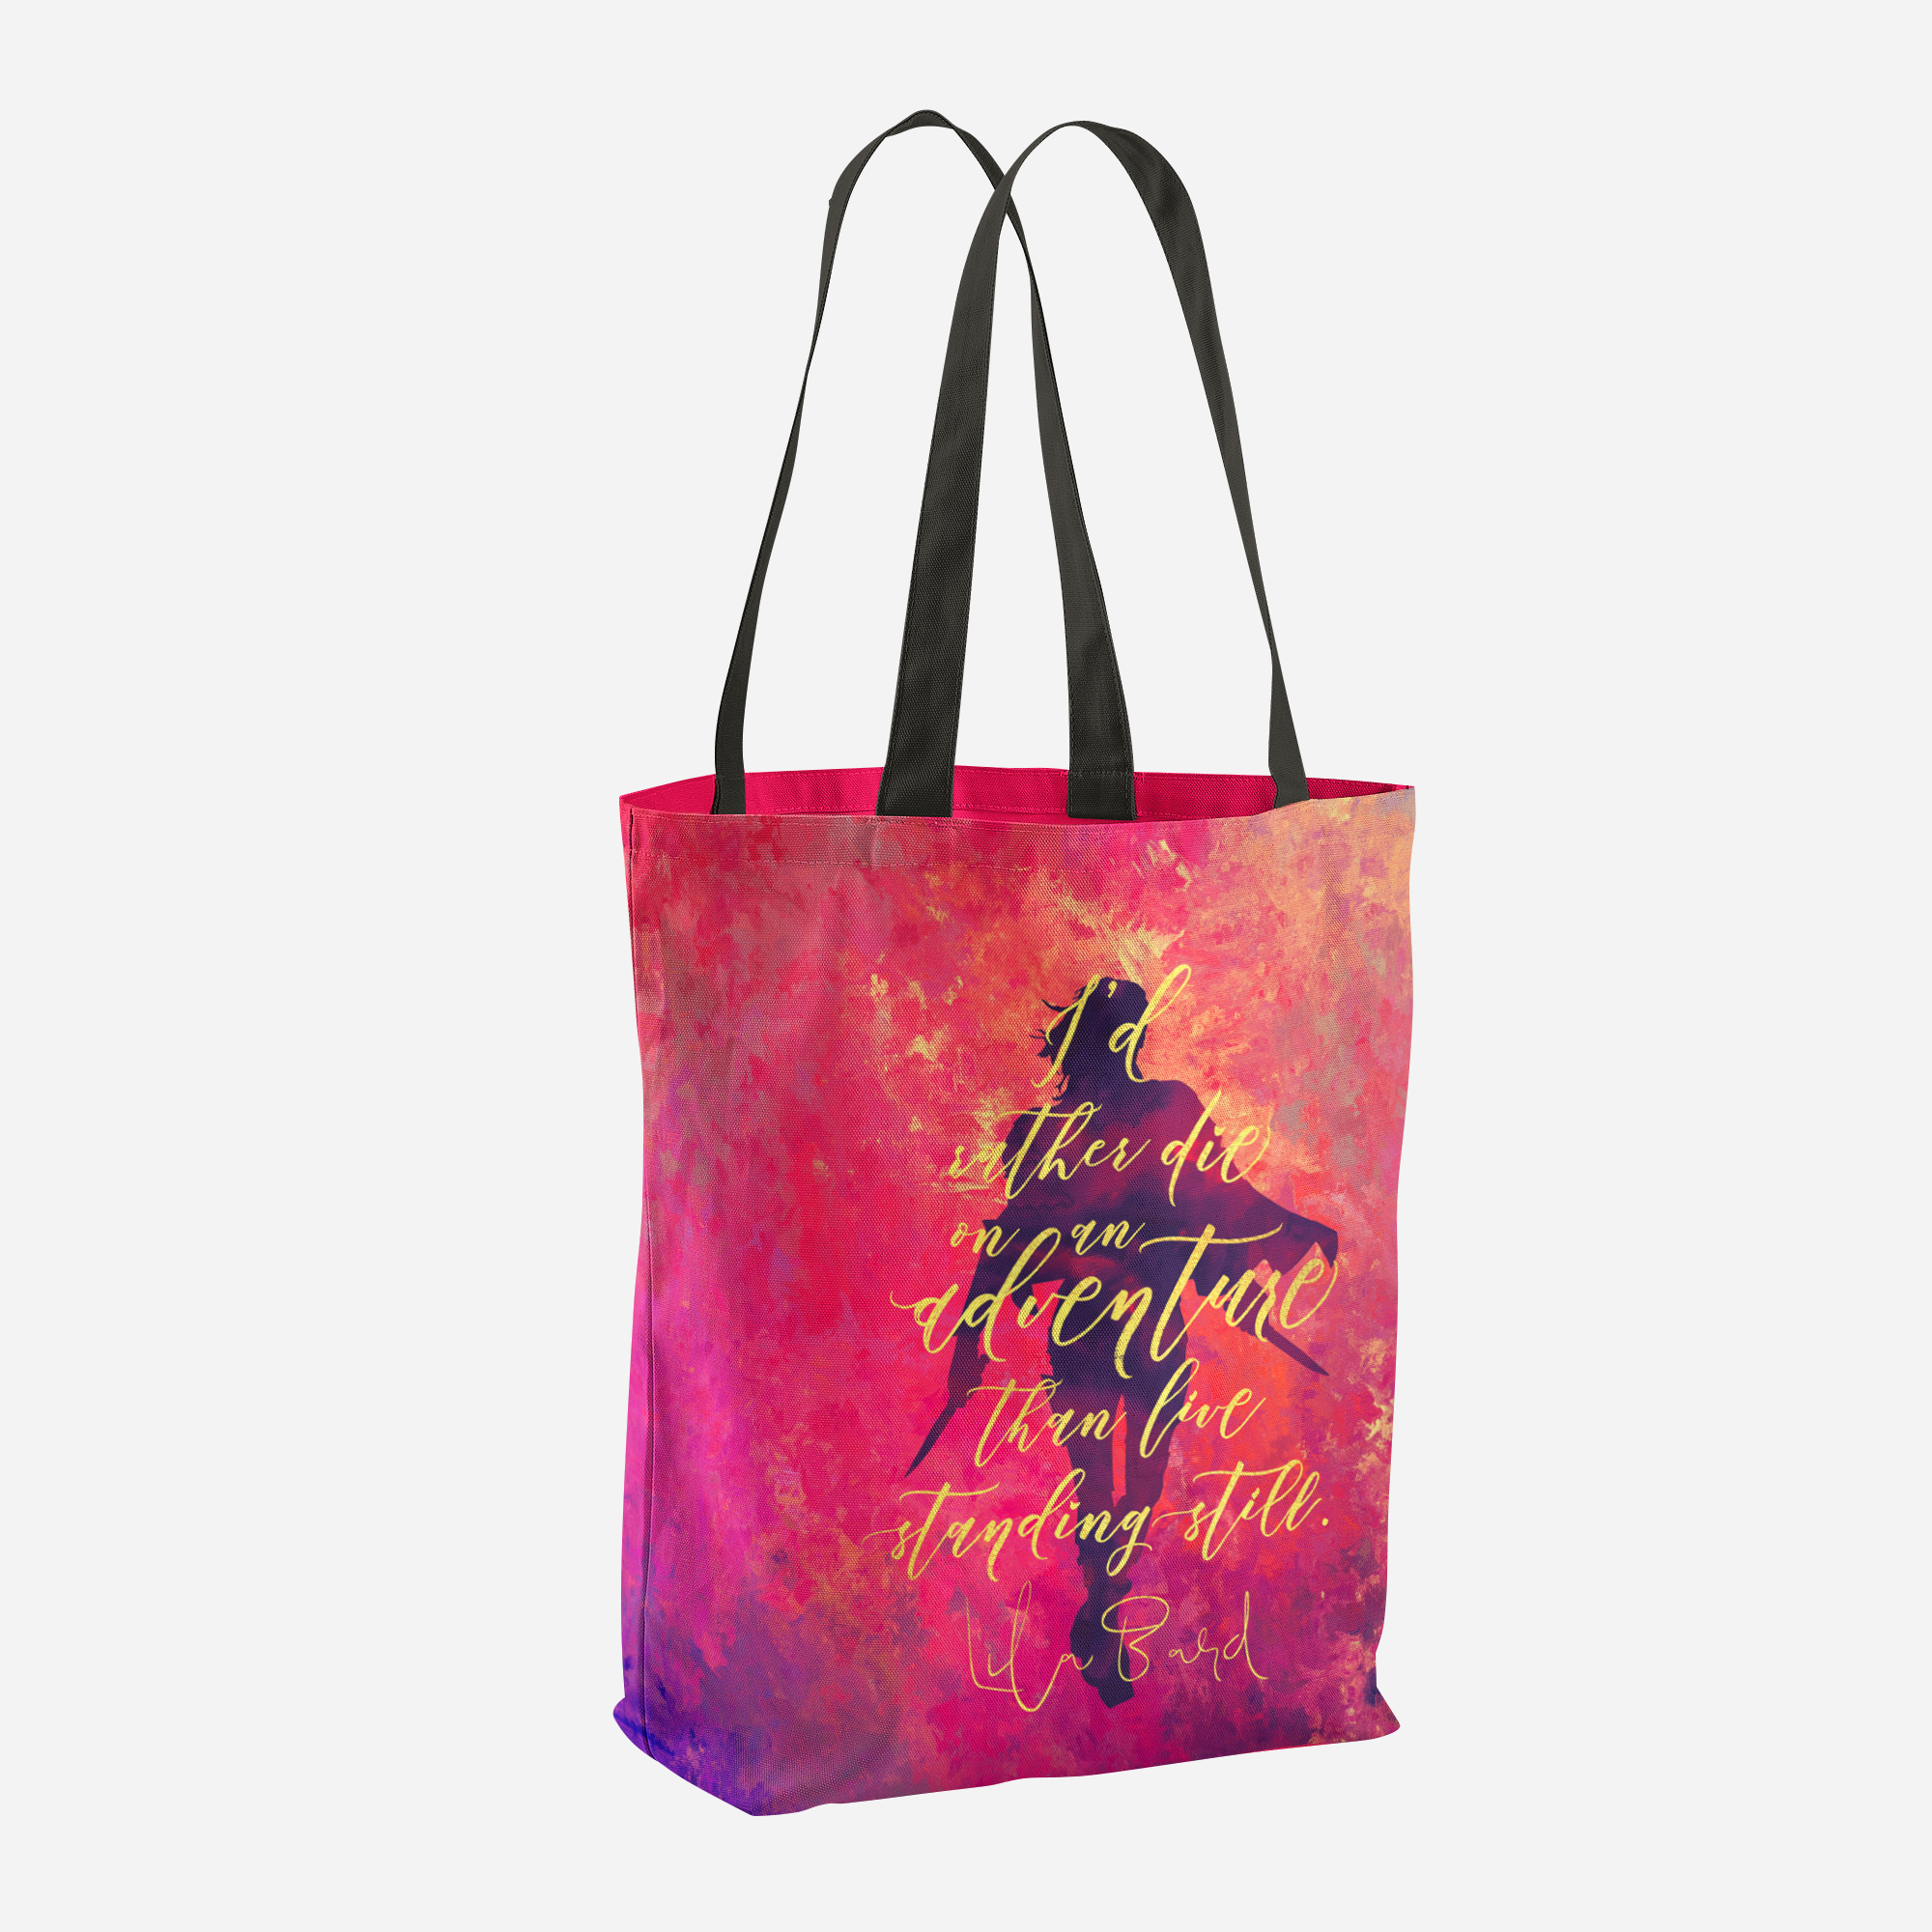 I'd rather die on an adventure... A Darker Shade of Magic Quote Tote Bag - LitLifeCo.